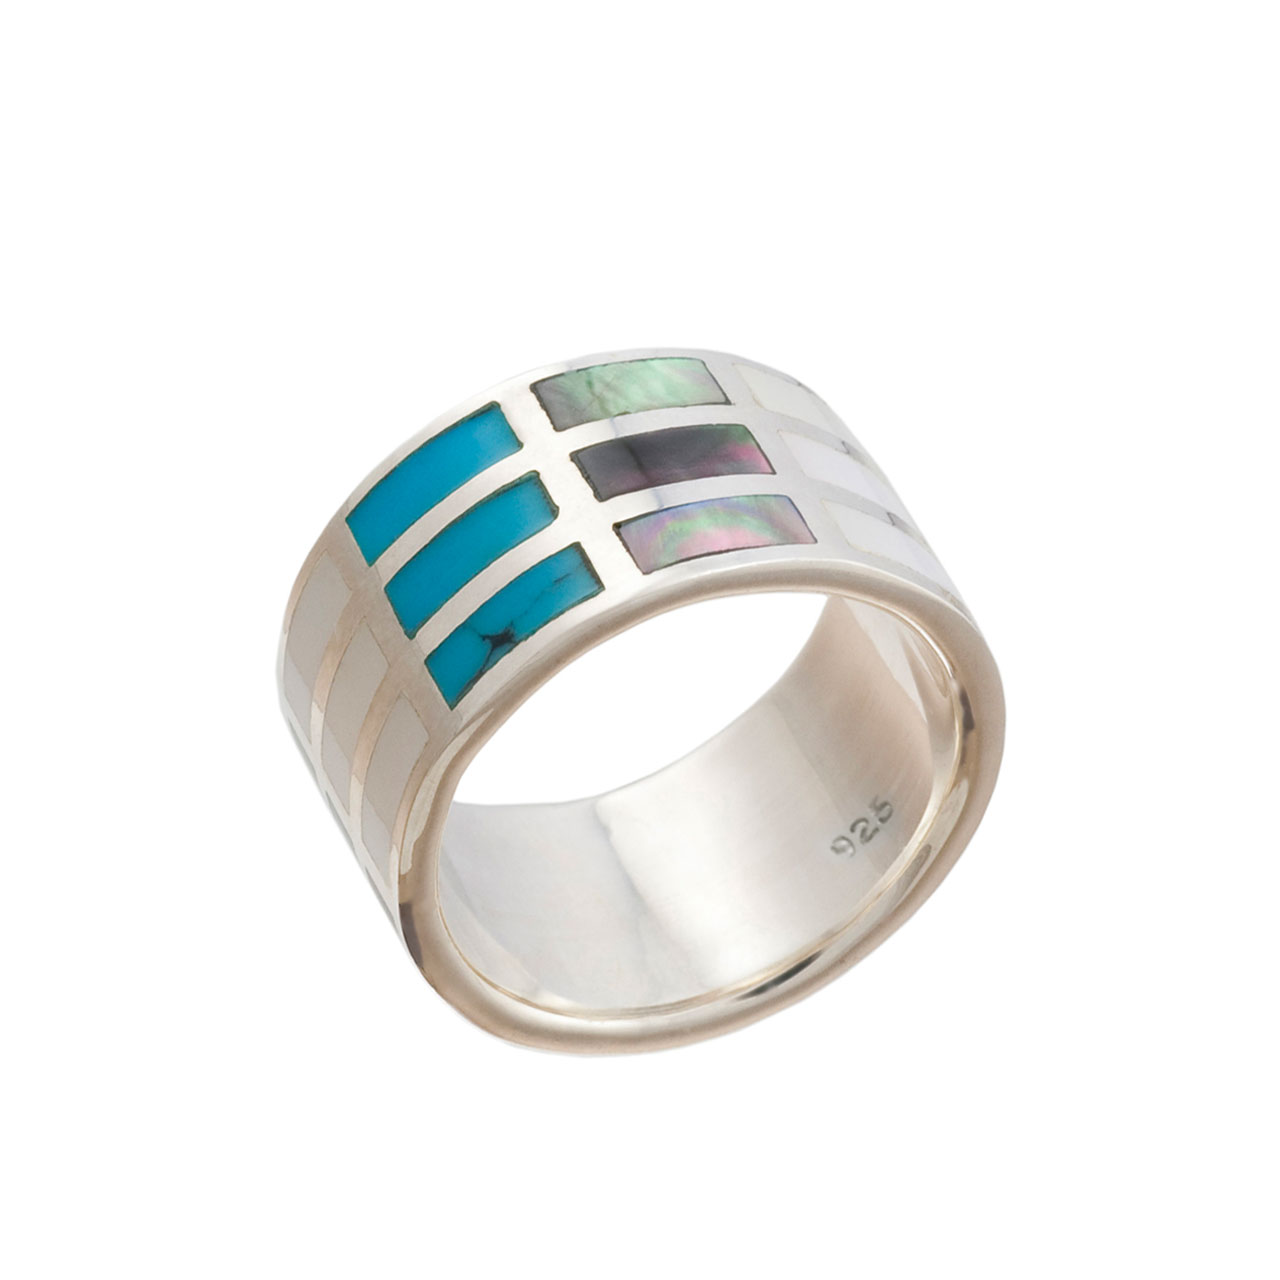 Multi-Colored Mother-of-Pearl and Turquoise Ring